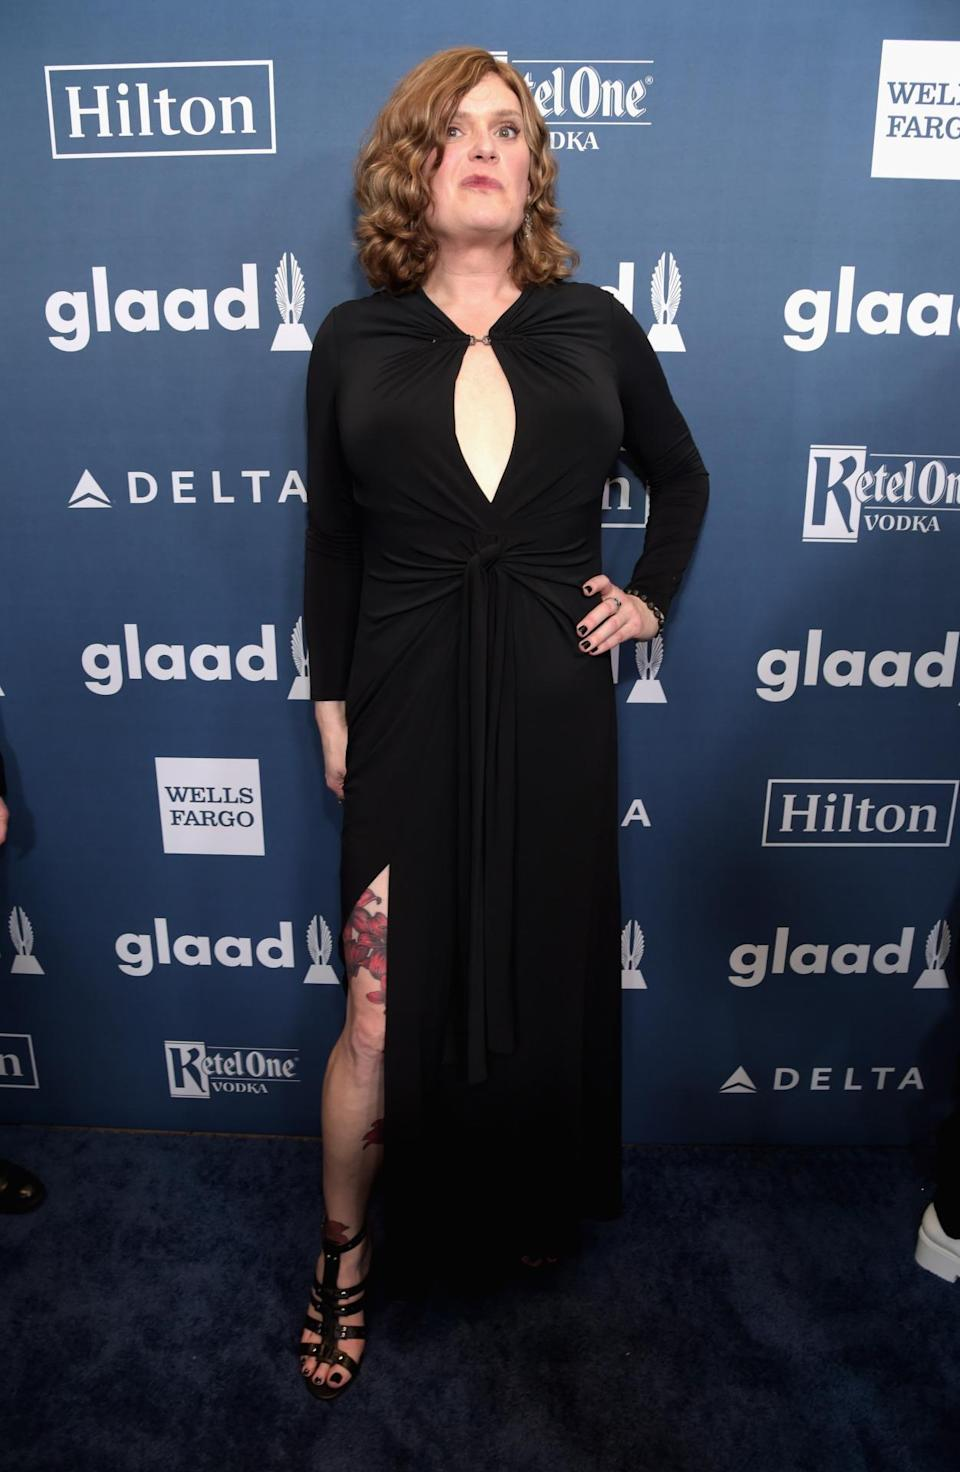 <p>Lilly Wachowski made her first public appearance since announcing her transition to female. For her red carpet debut, the director chose a black keyhole dress with a thigh-high slit that showed off tattoos. <i>(Photo: AP)</i></p>